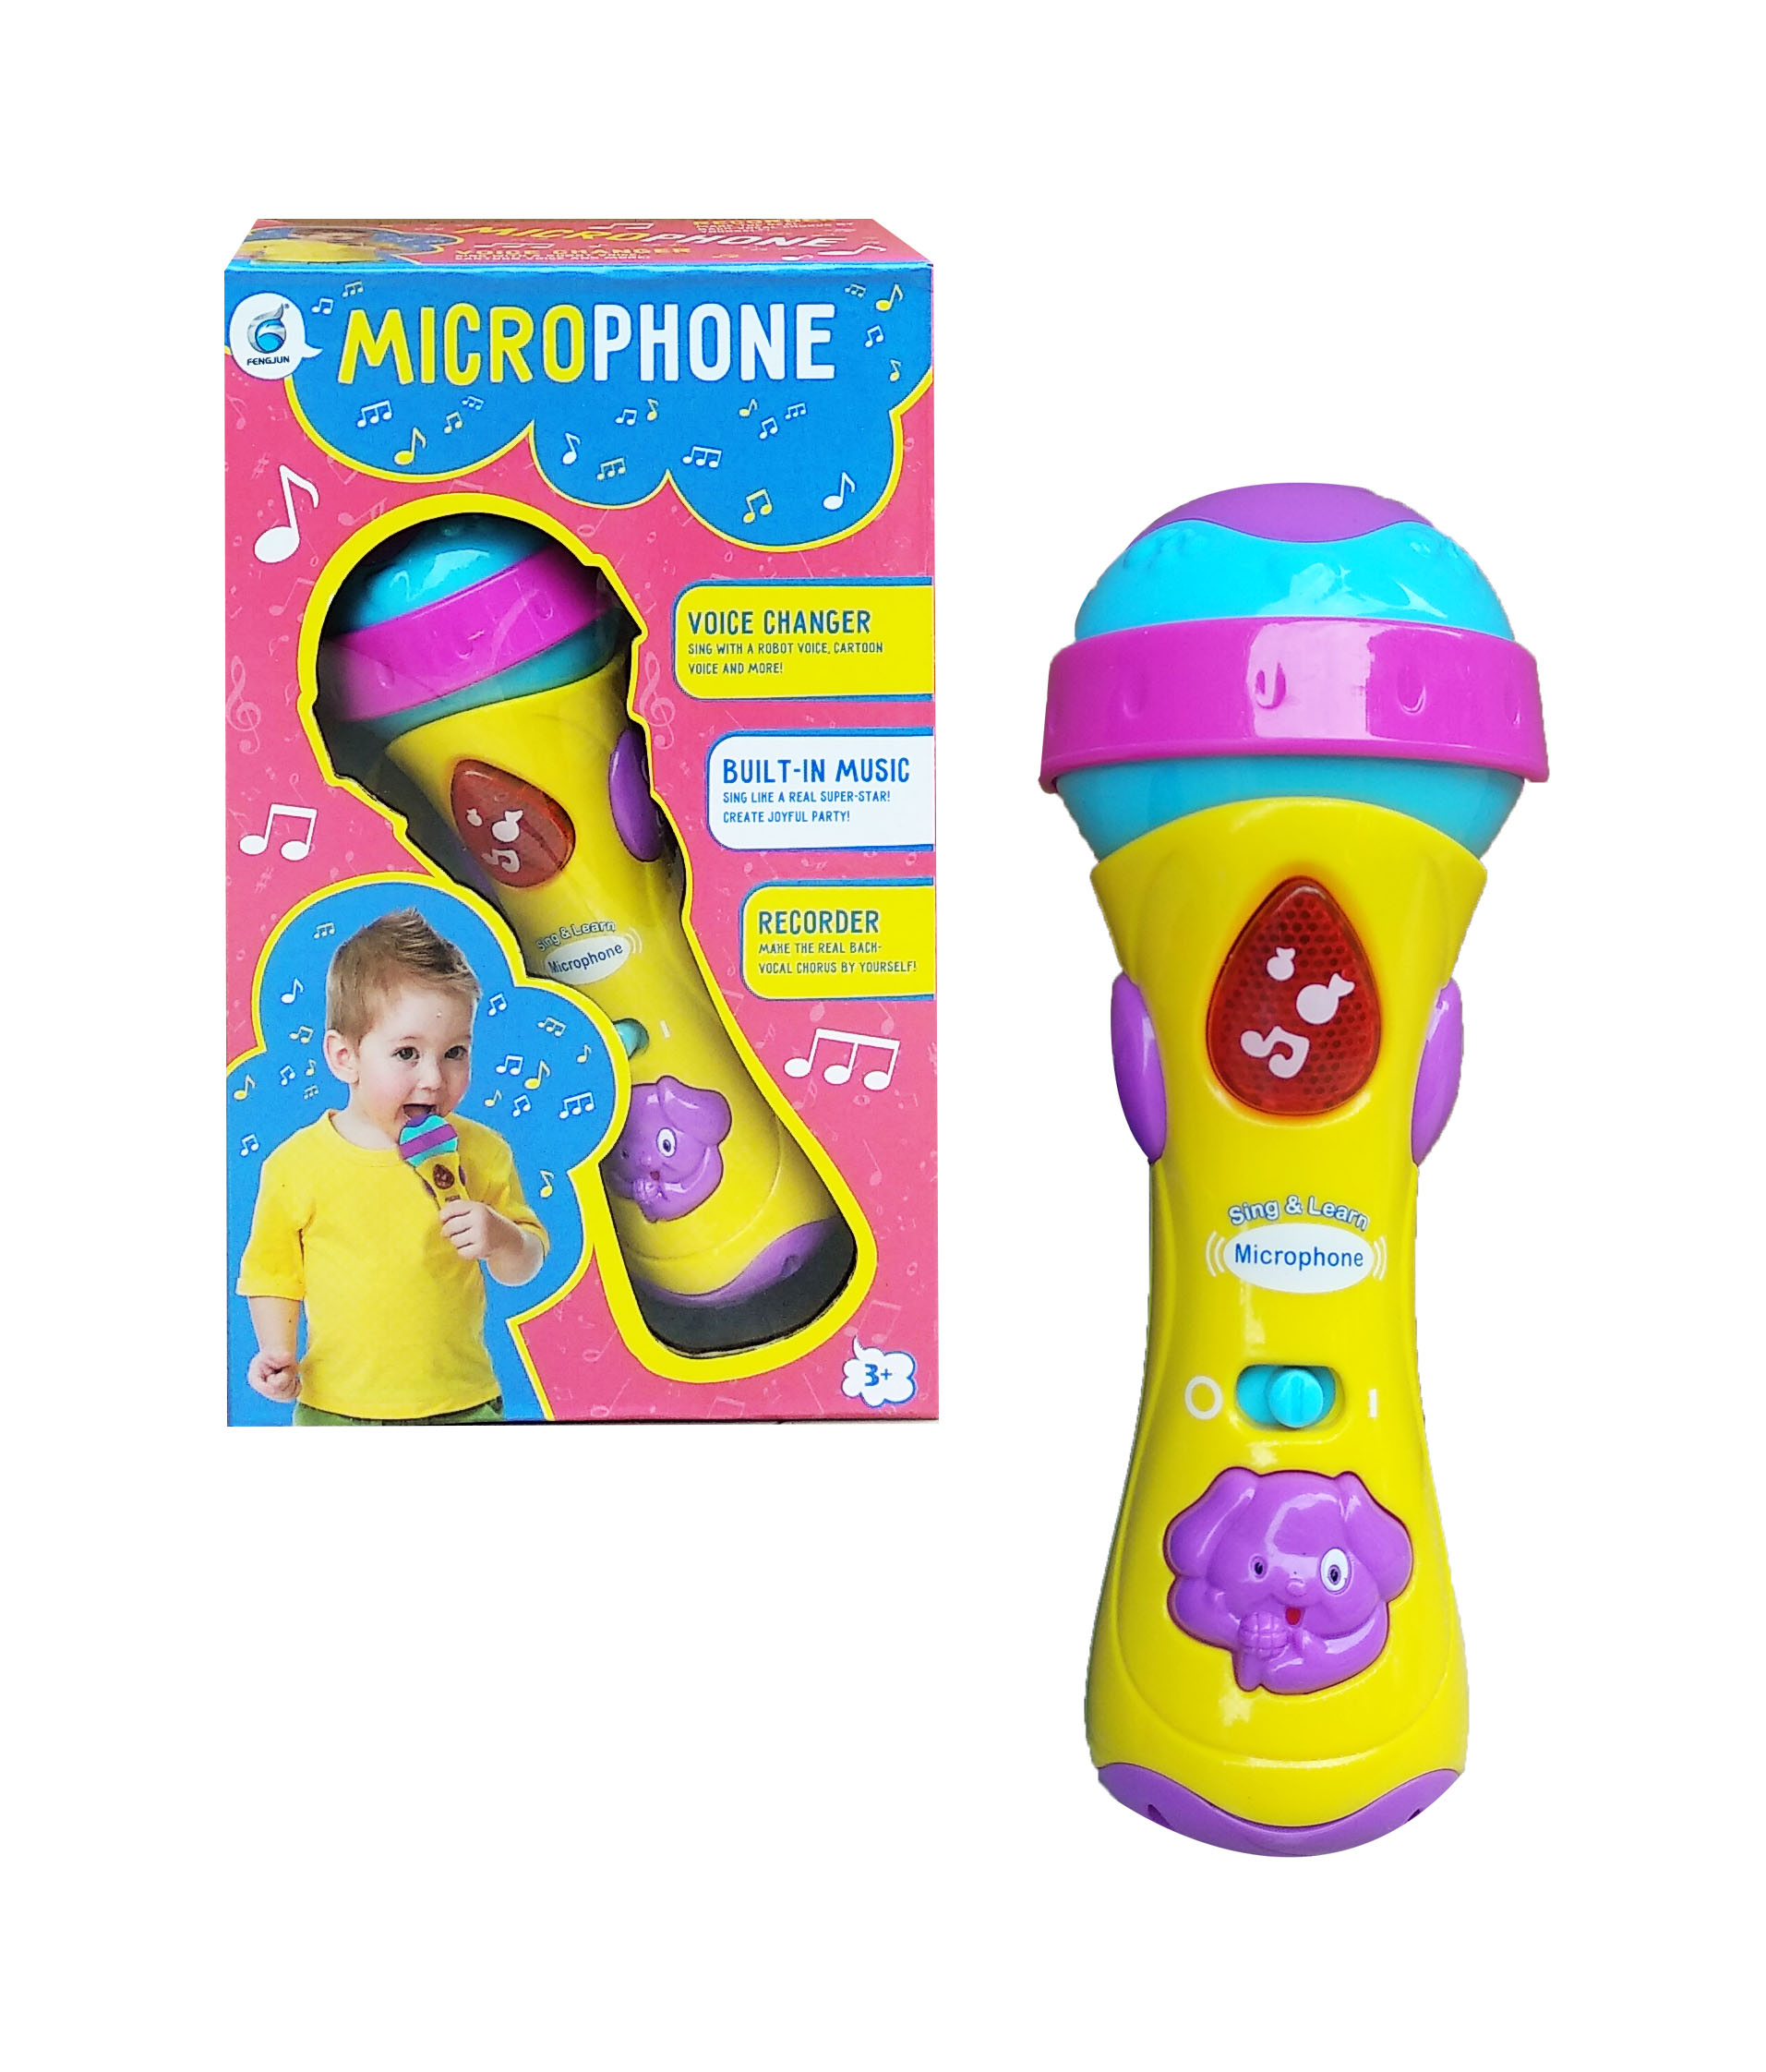 toko mainan online SING & LEARN MICROPHONE - 5258D